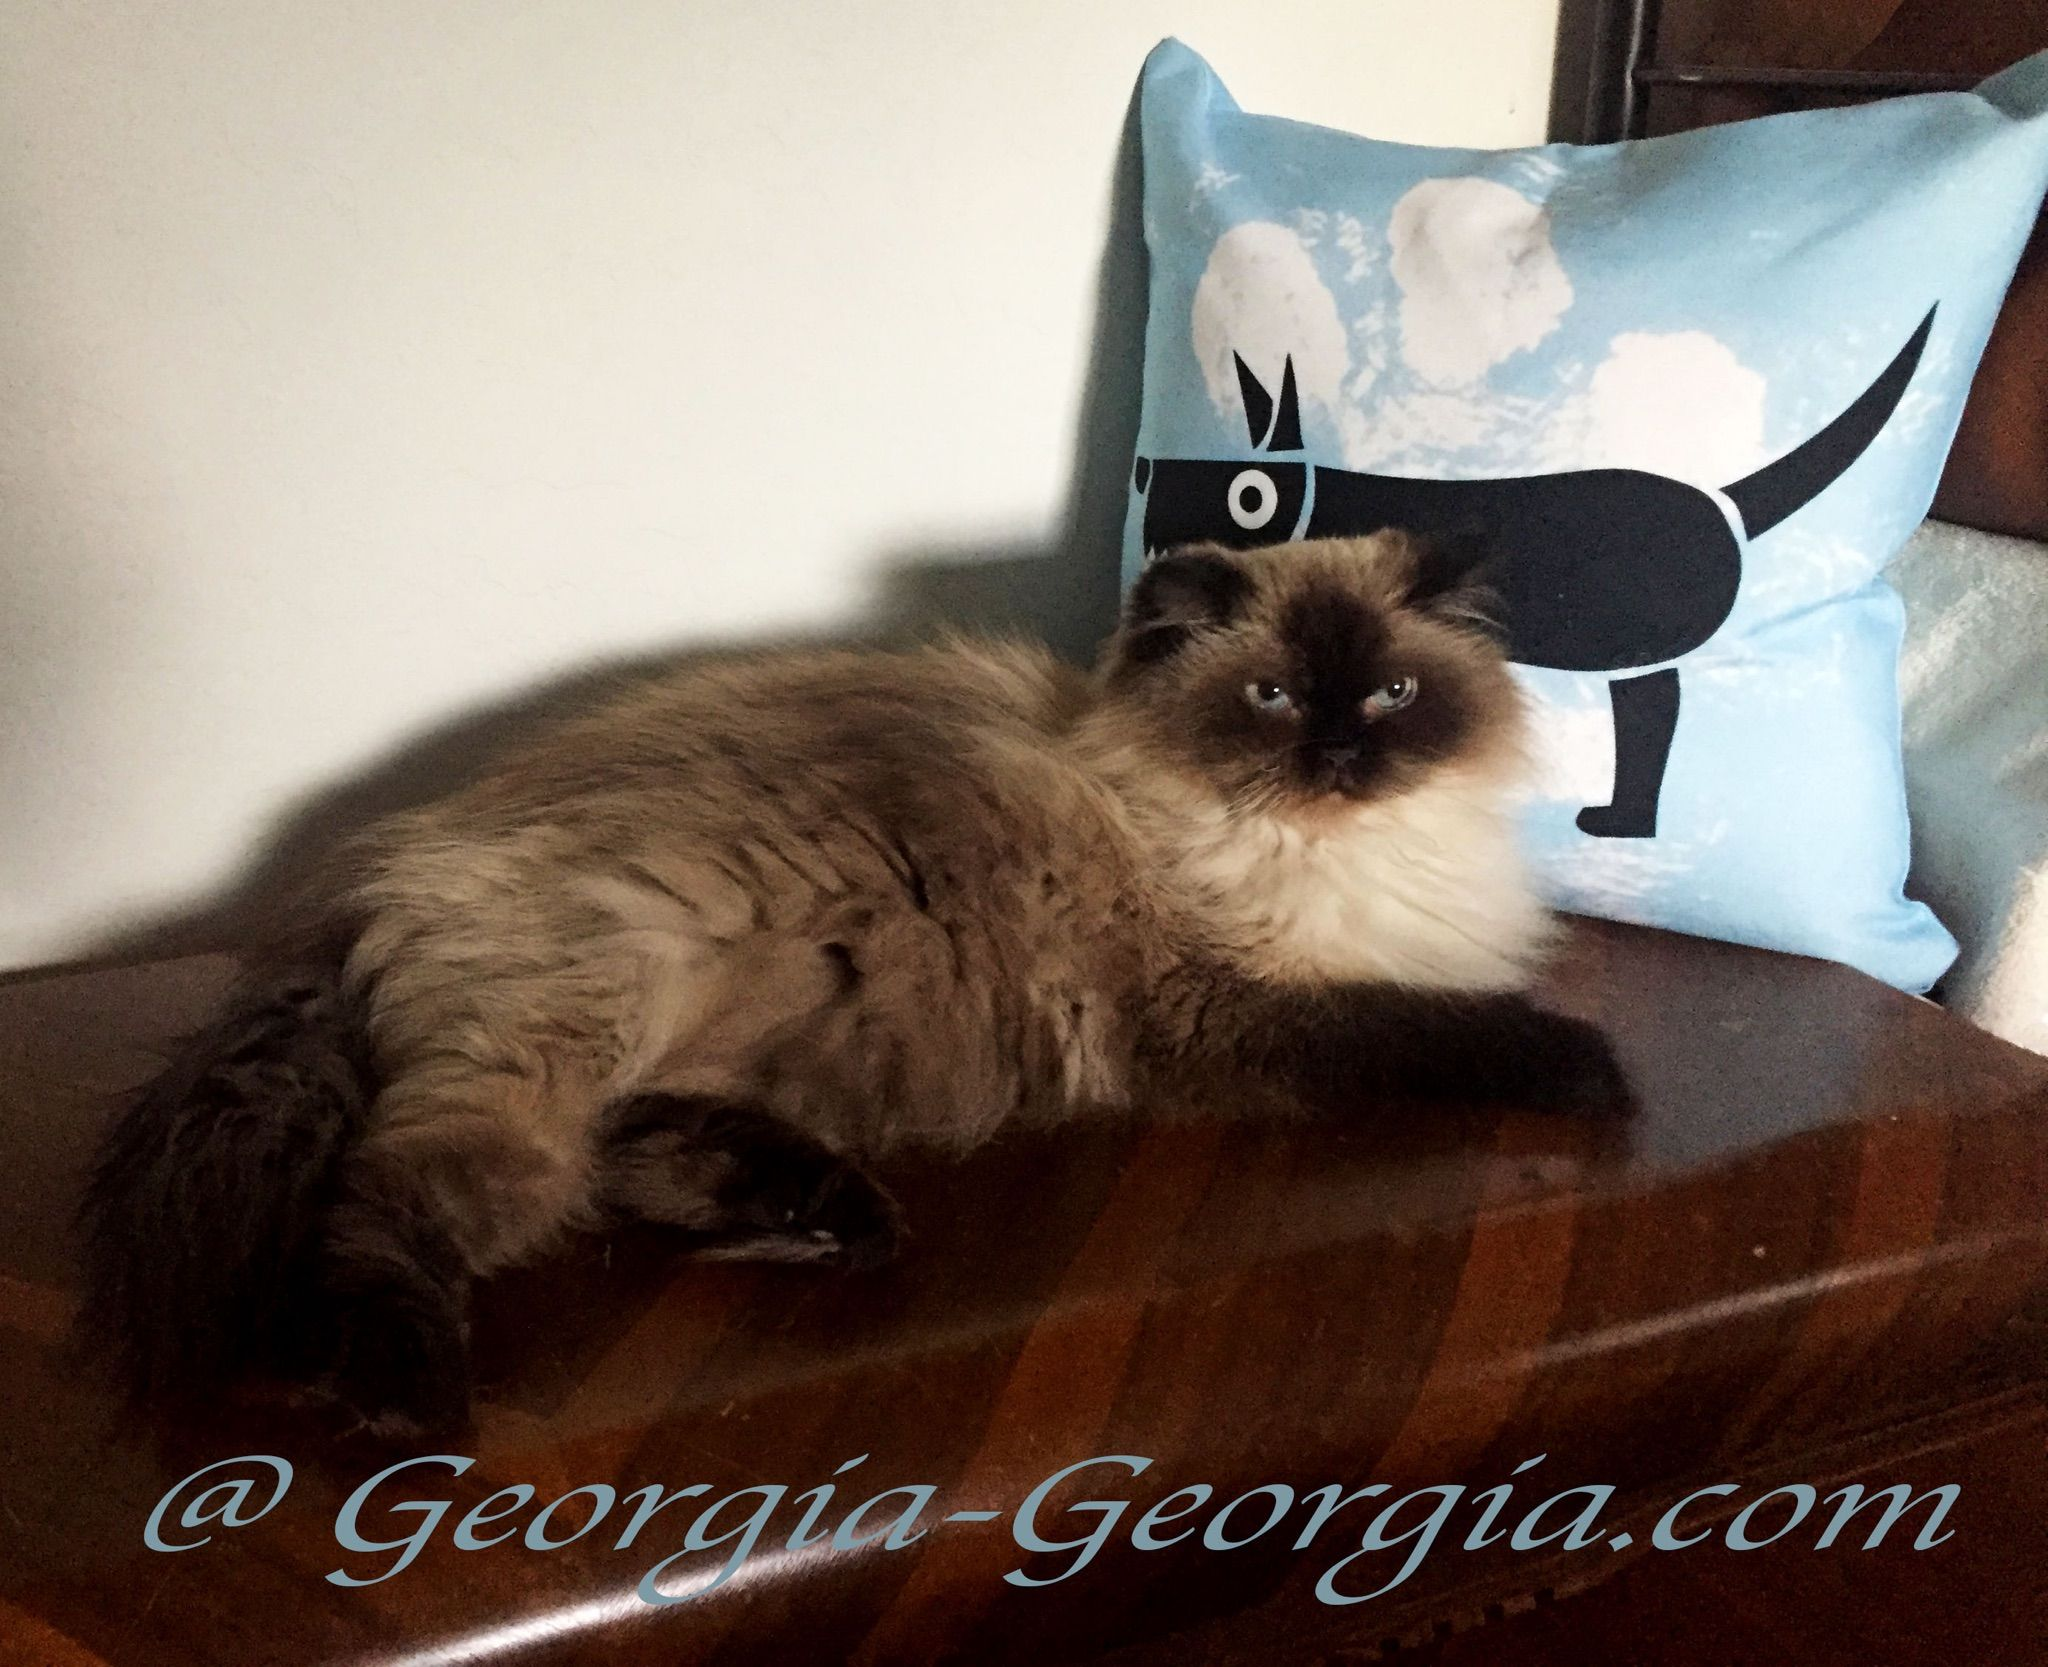 "Caught sleeping with a Dog ..... Pillow!   Scooter ""Doggedly"" pursuing a Caturday catnap    It's reigning Cats and Dogs @ Georgia-Georgia.com   ………. #Cat #Dog #Pillow #ThrowPillow #Caturday #Catnap #HimalayanCat #Himalayan #Ragdoll #Weekend #Saturday #Kitten #Puppy #Caturday"